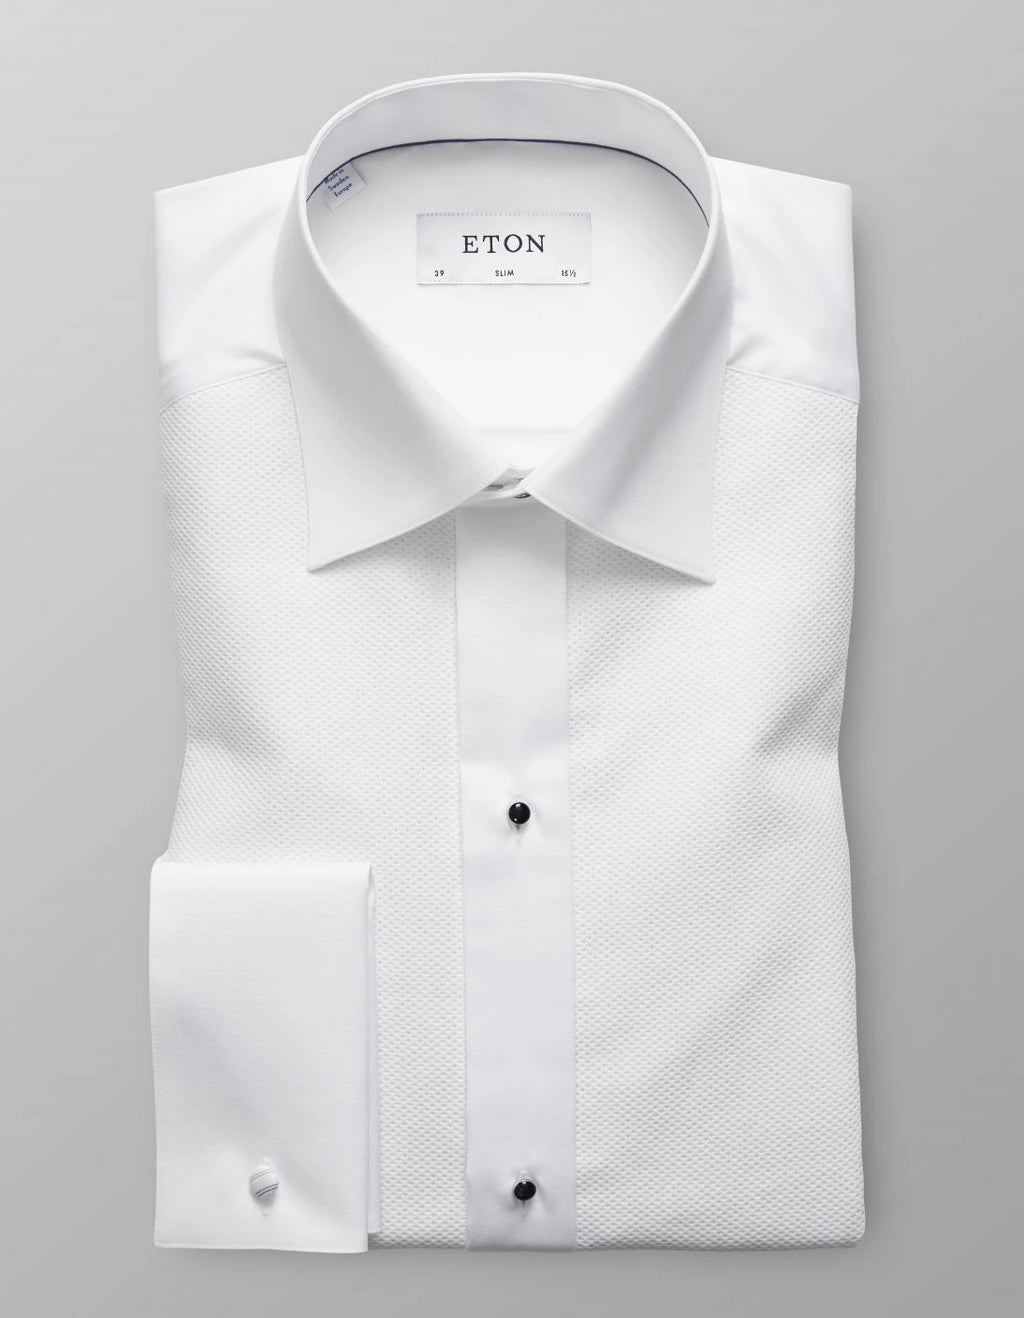 Premium quality men's evening pique shirt in white